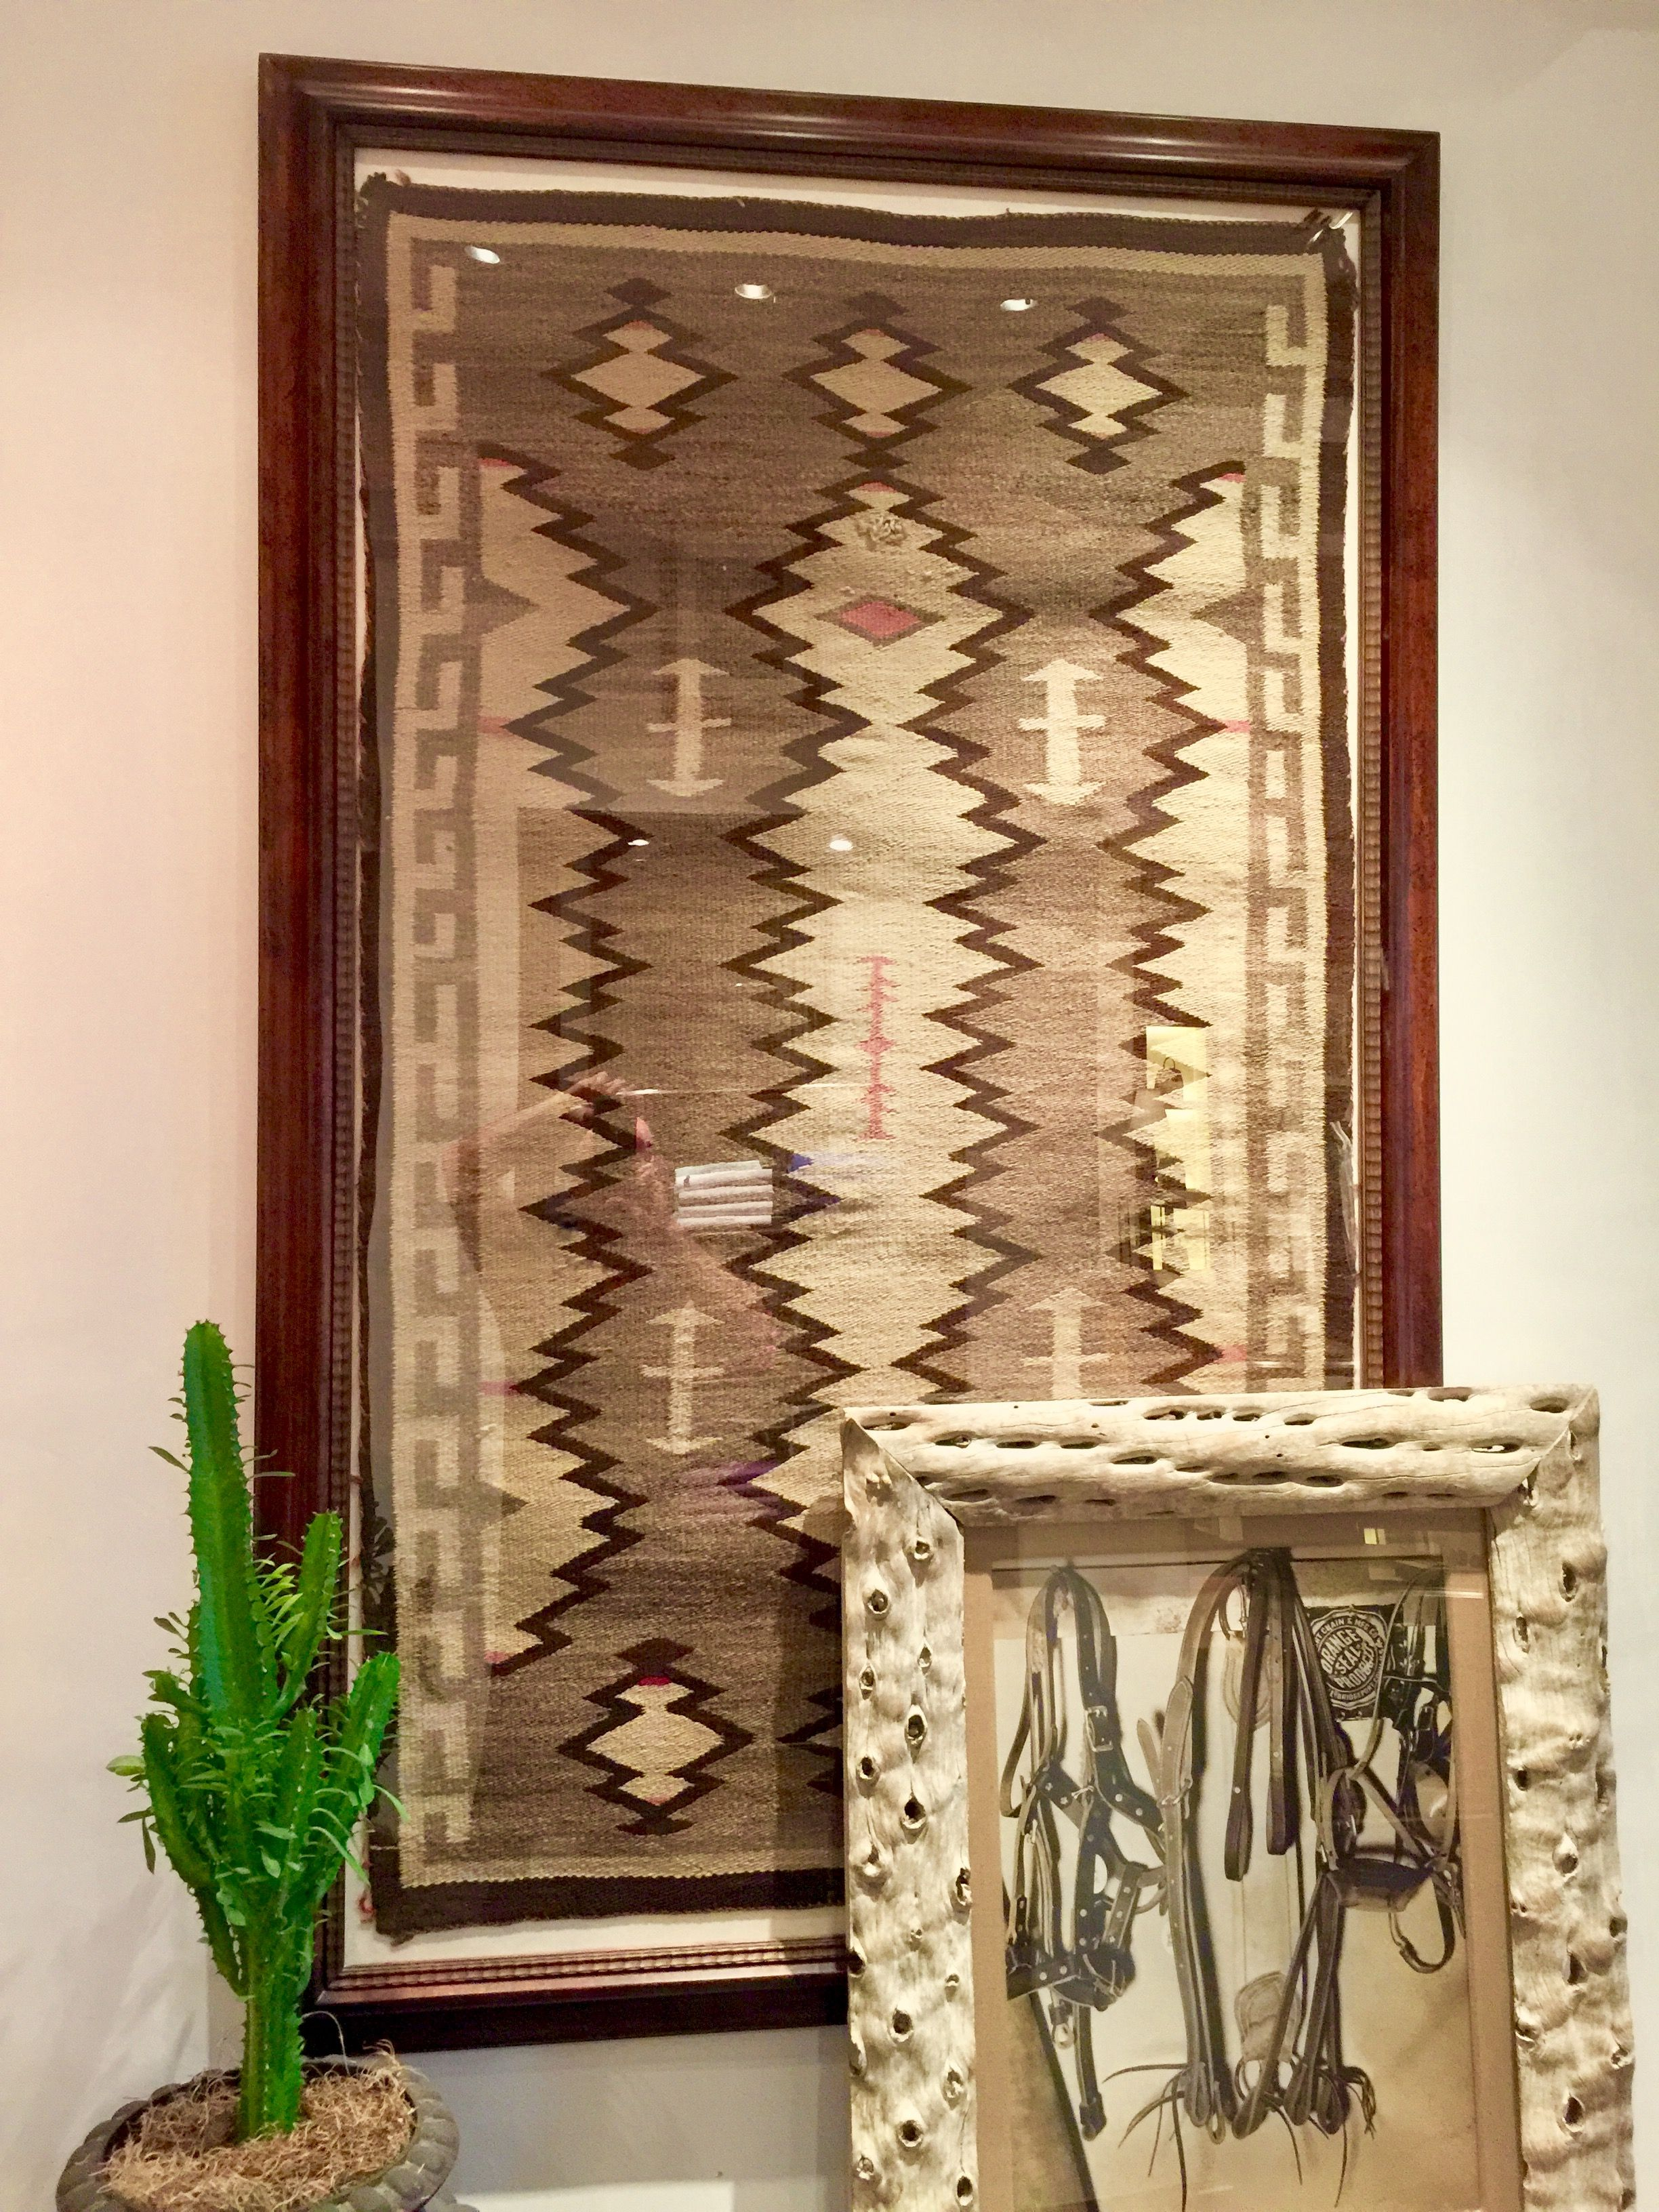 Framed Navajo rug   Home projects   Pinterest